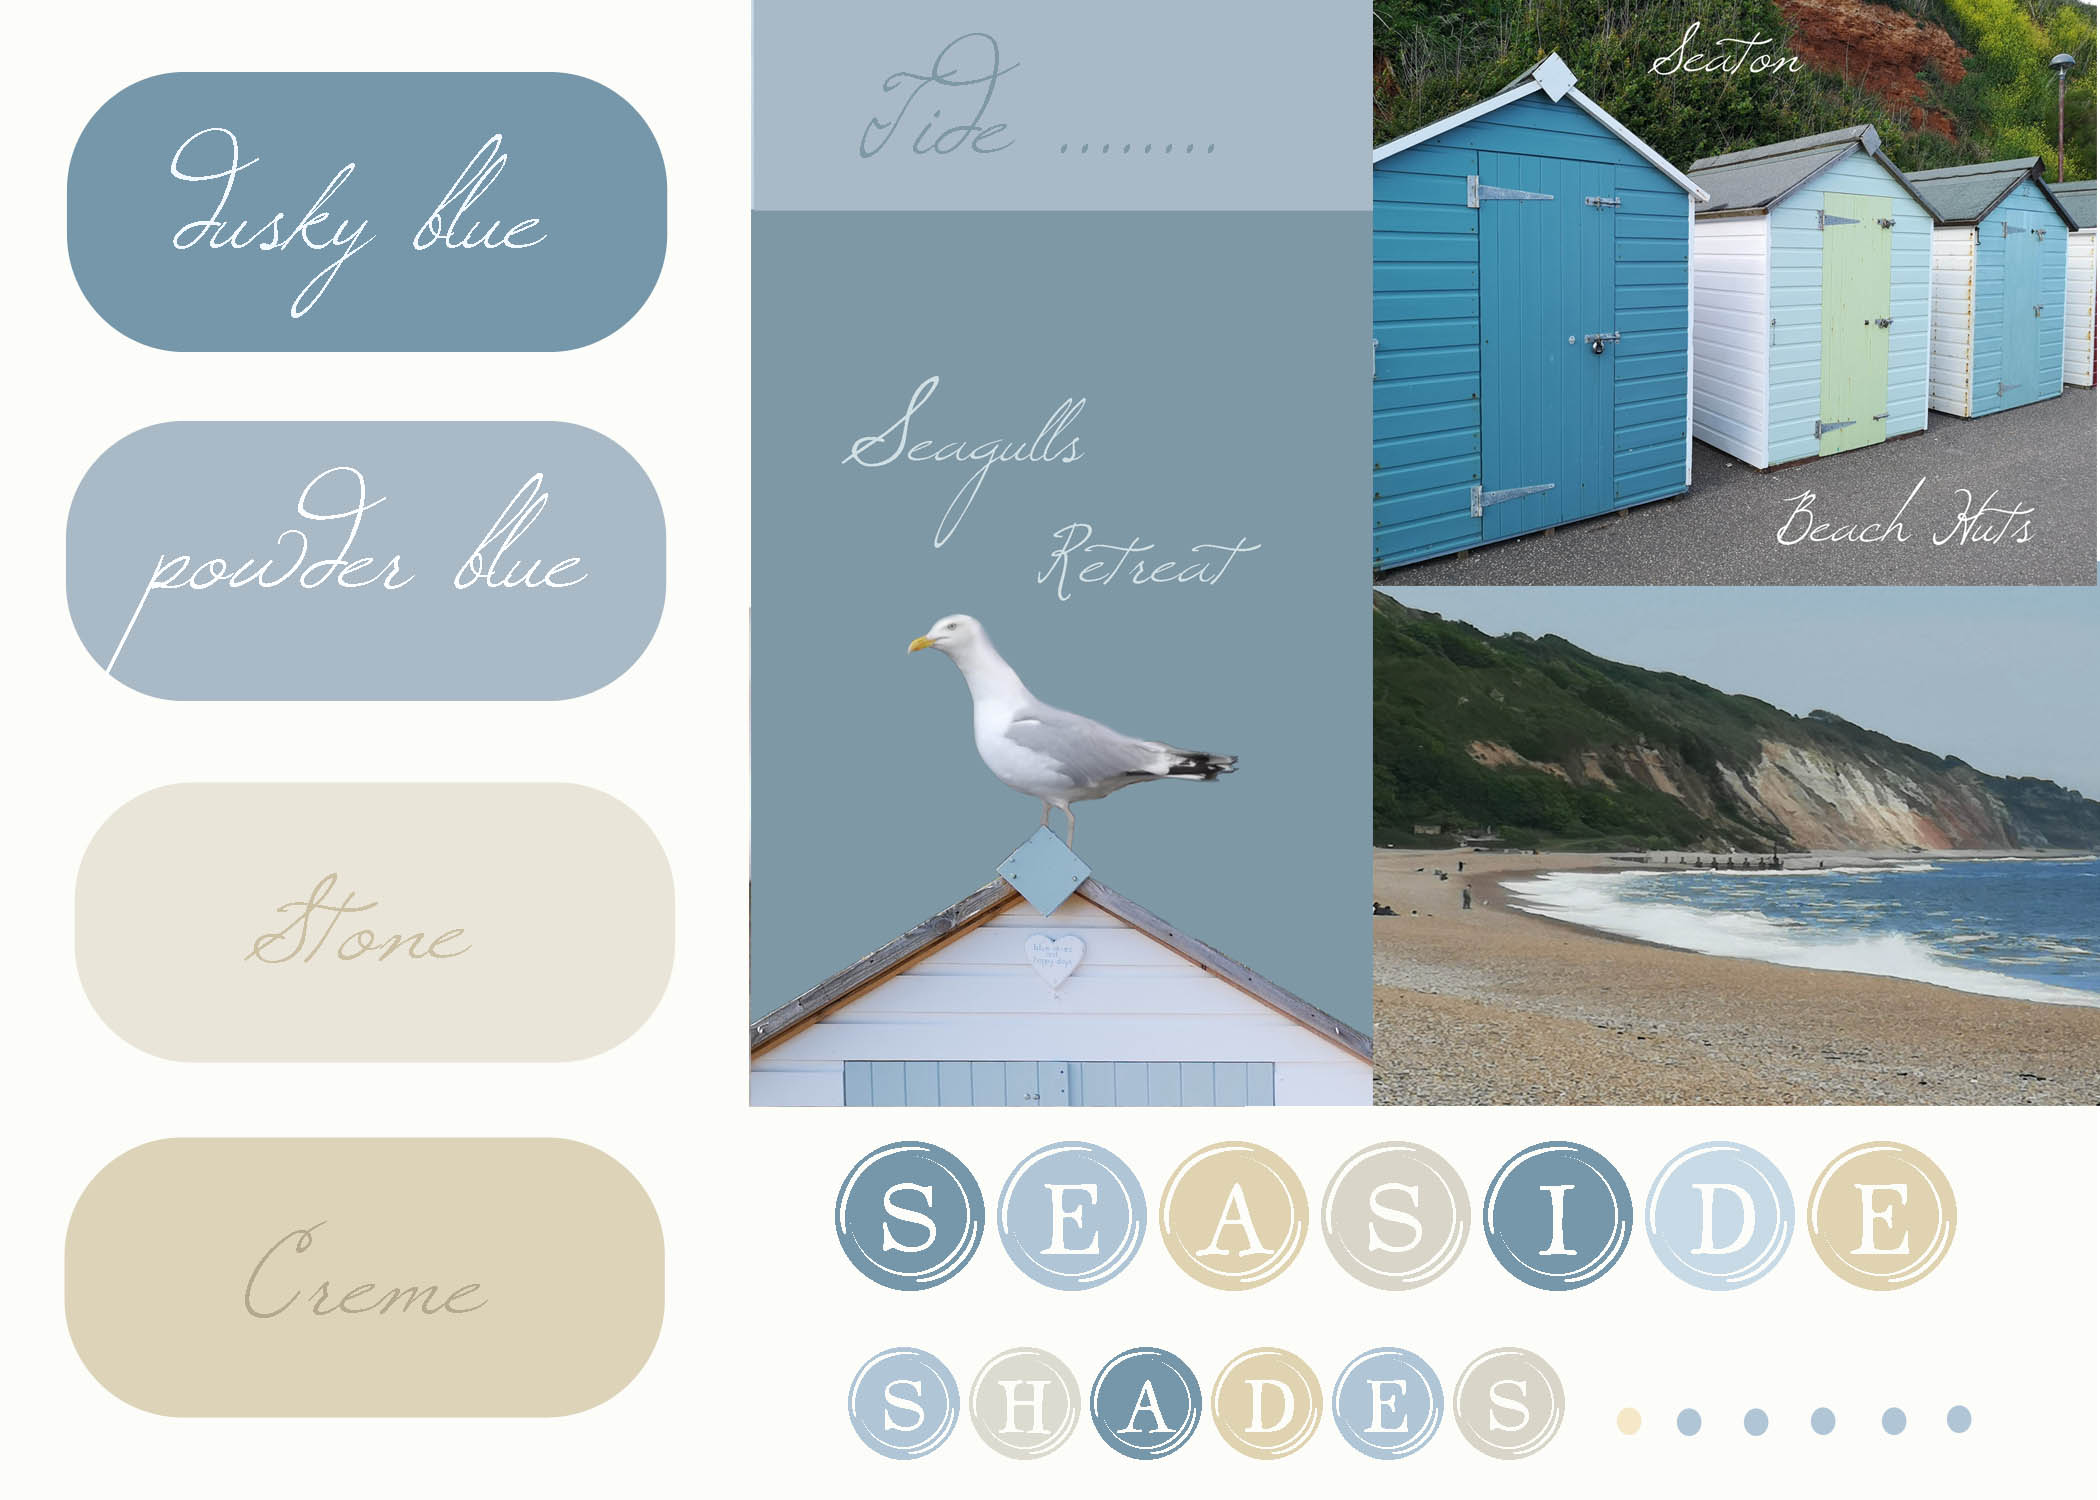 Seaside shades mood board inspired by our recent trip to Seaton in Devon. Thinking about new ideas for future greetings card and print projects all based around particular colour themes,